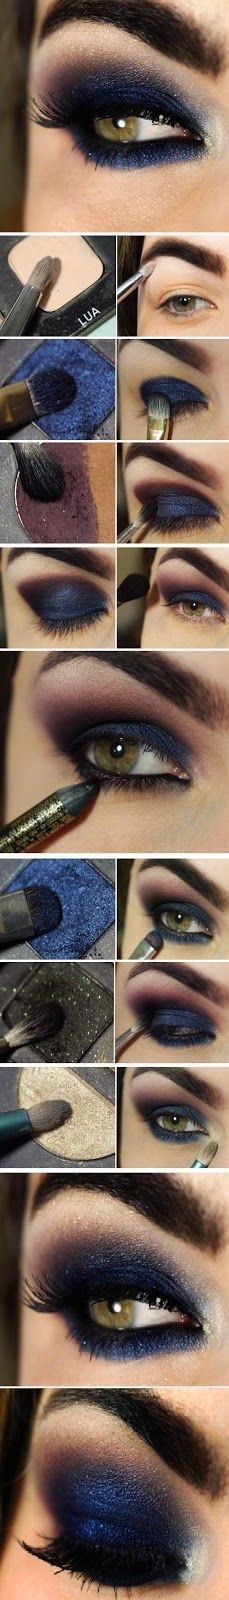 How to : Navy blue palette Makeup Tutorials - Step by Step / LoLus Makeup Fashion Gorgeous!